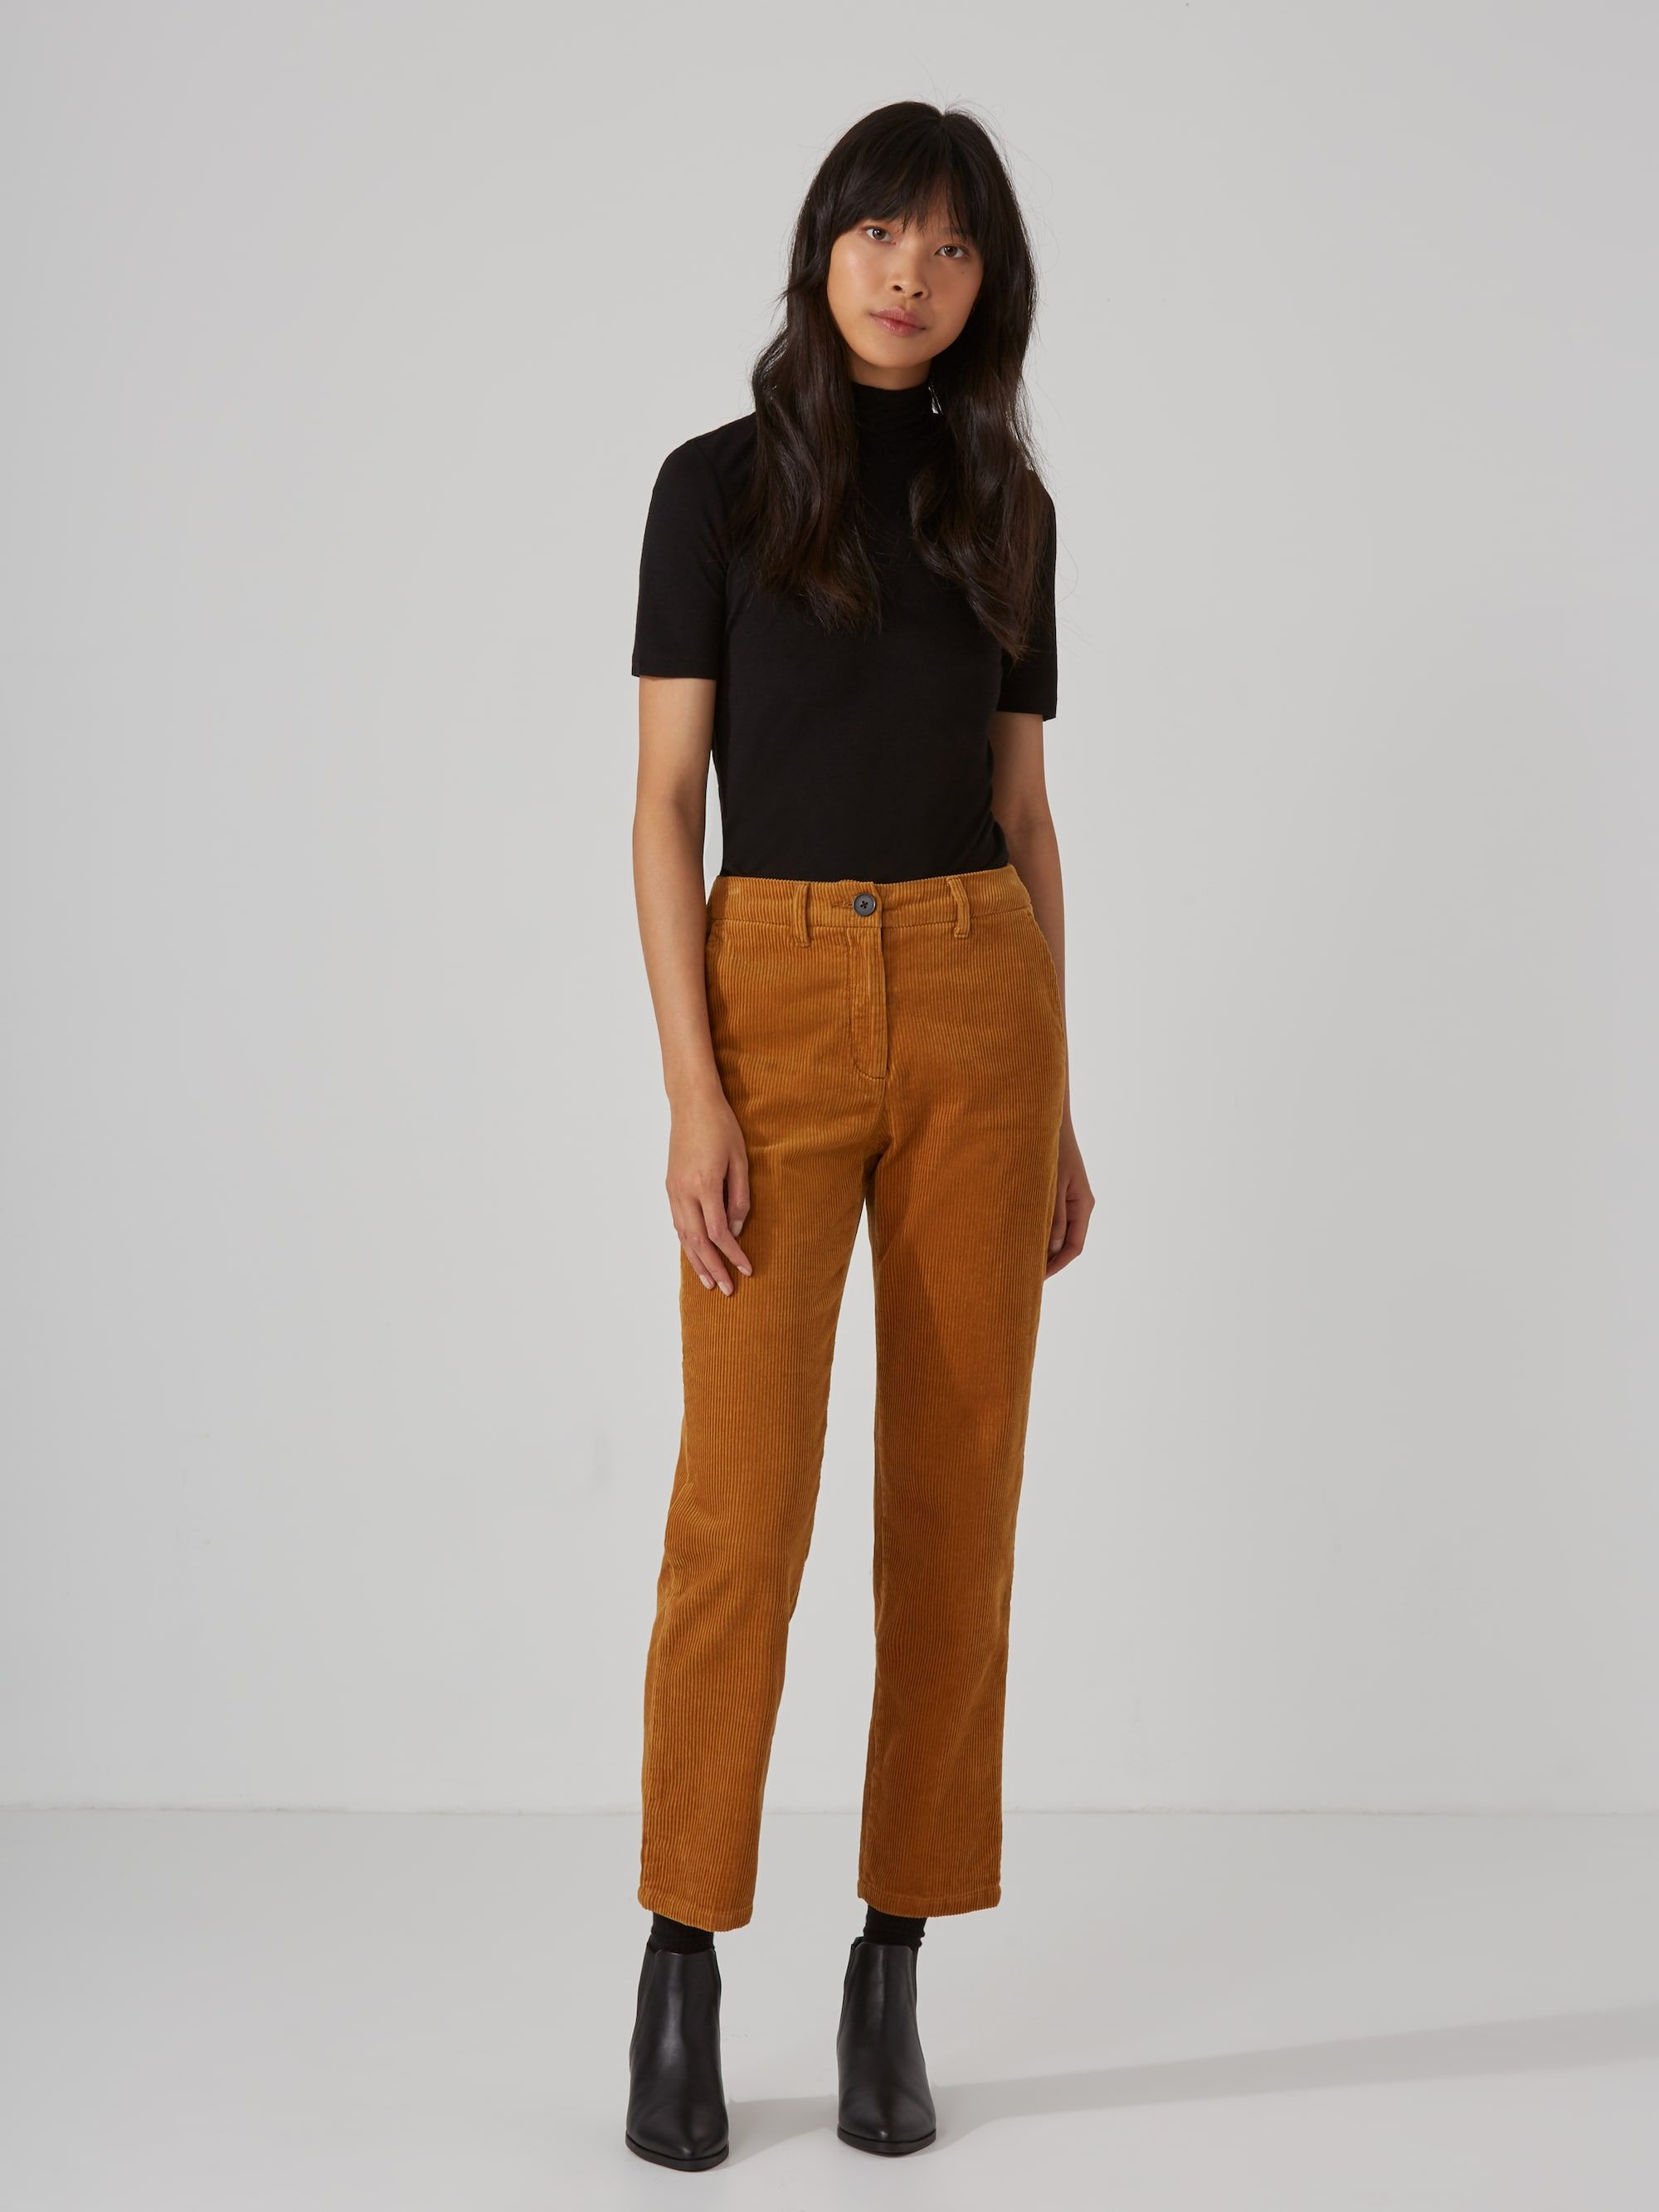 most reliable quality first factory outlets Cropped Corduroy Pant in Cathay Spice | Outfit ideas in 2019 ...